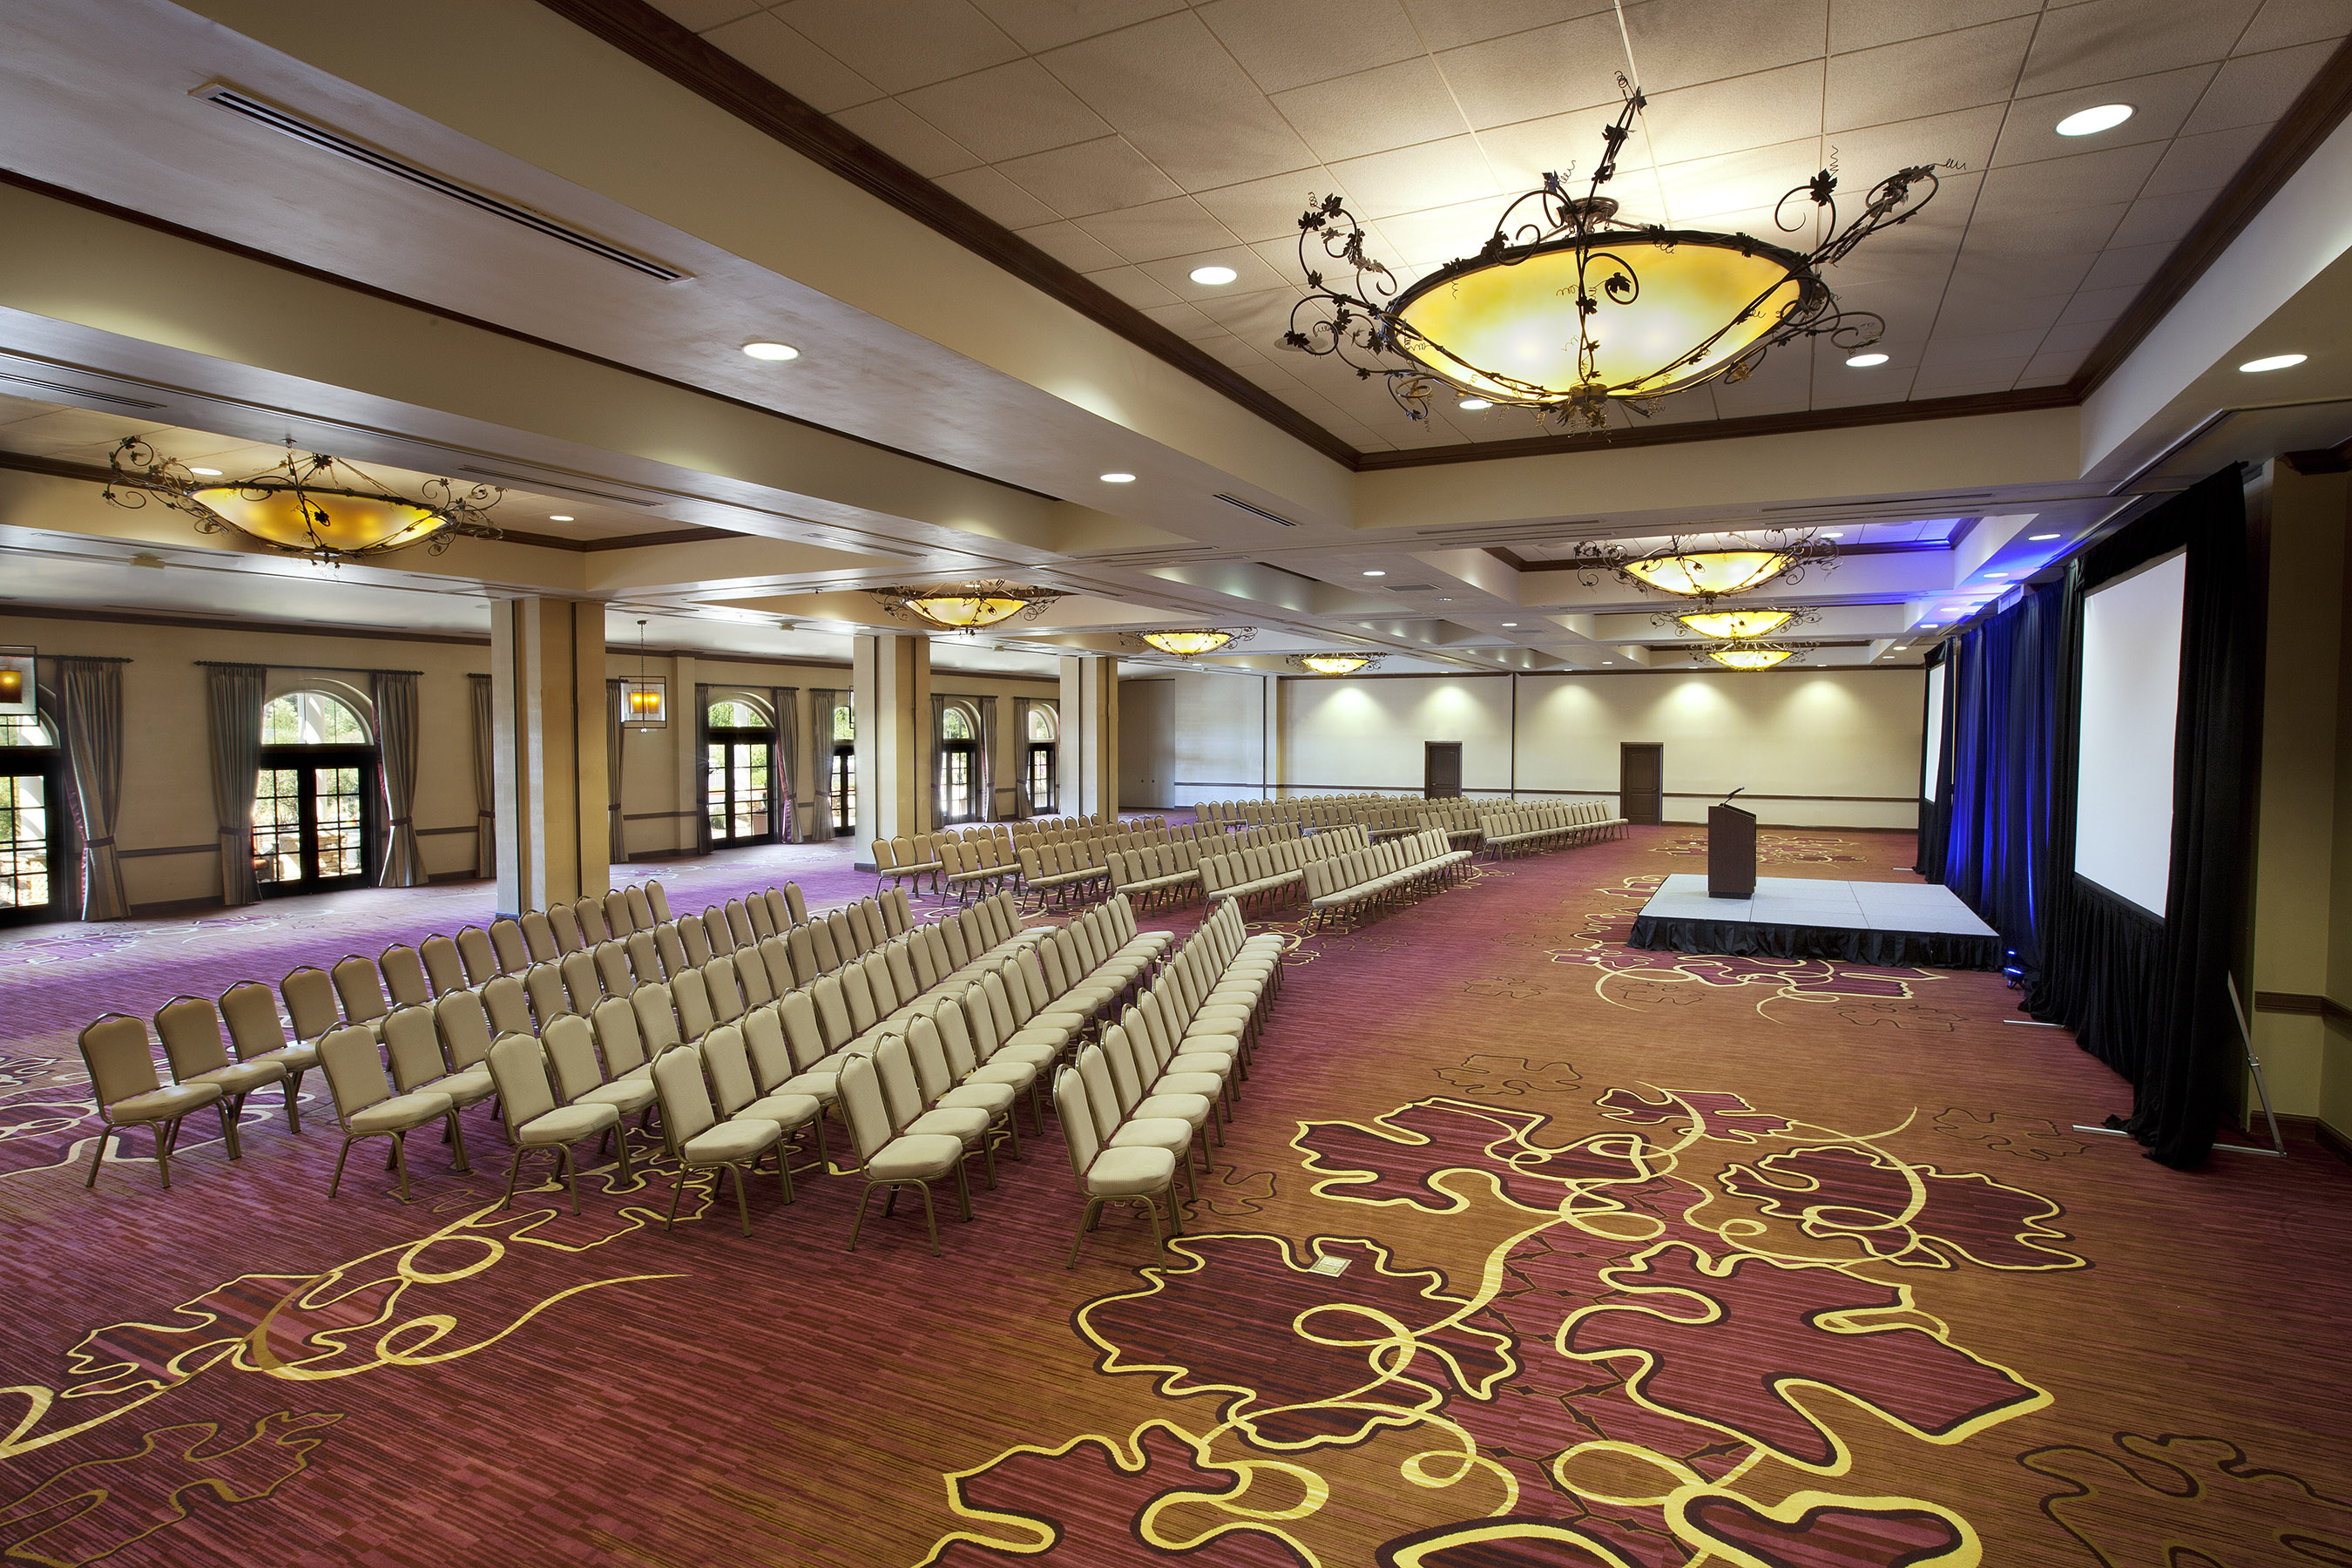 With more than 50,000 square feet of indoor and outdoor meeting space, The Meritage Resort can host events from 10 to more than 1,000.